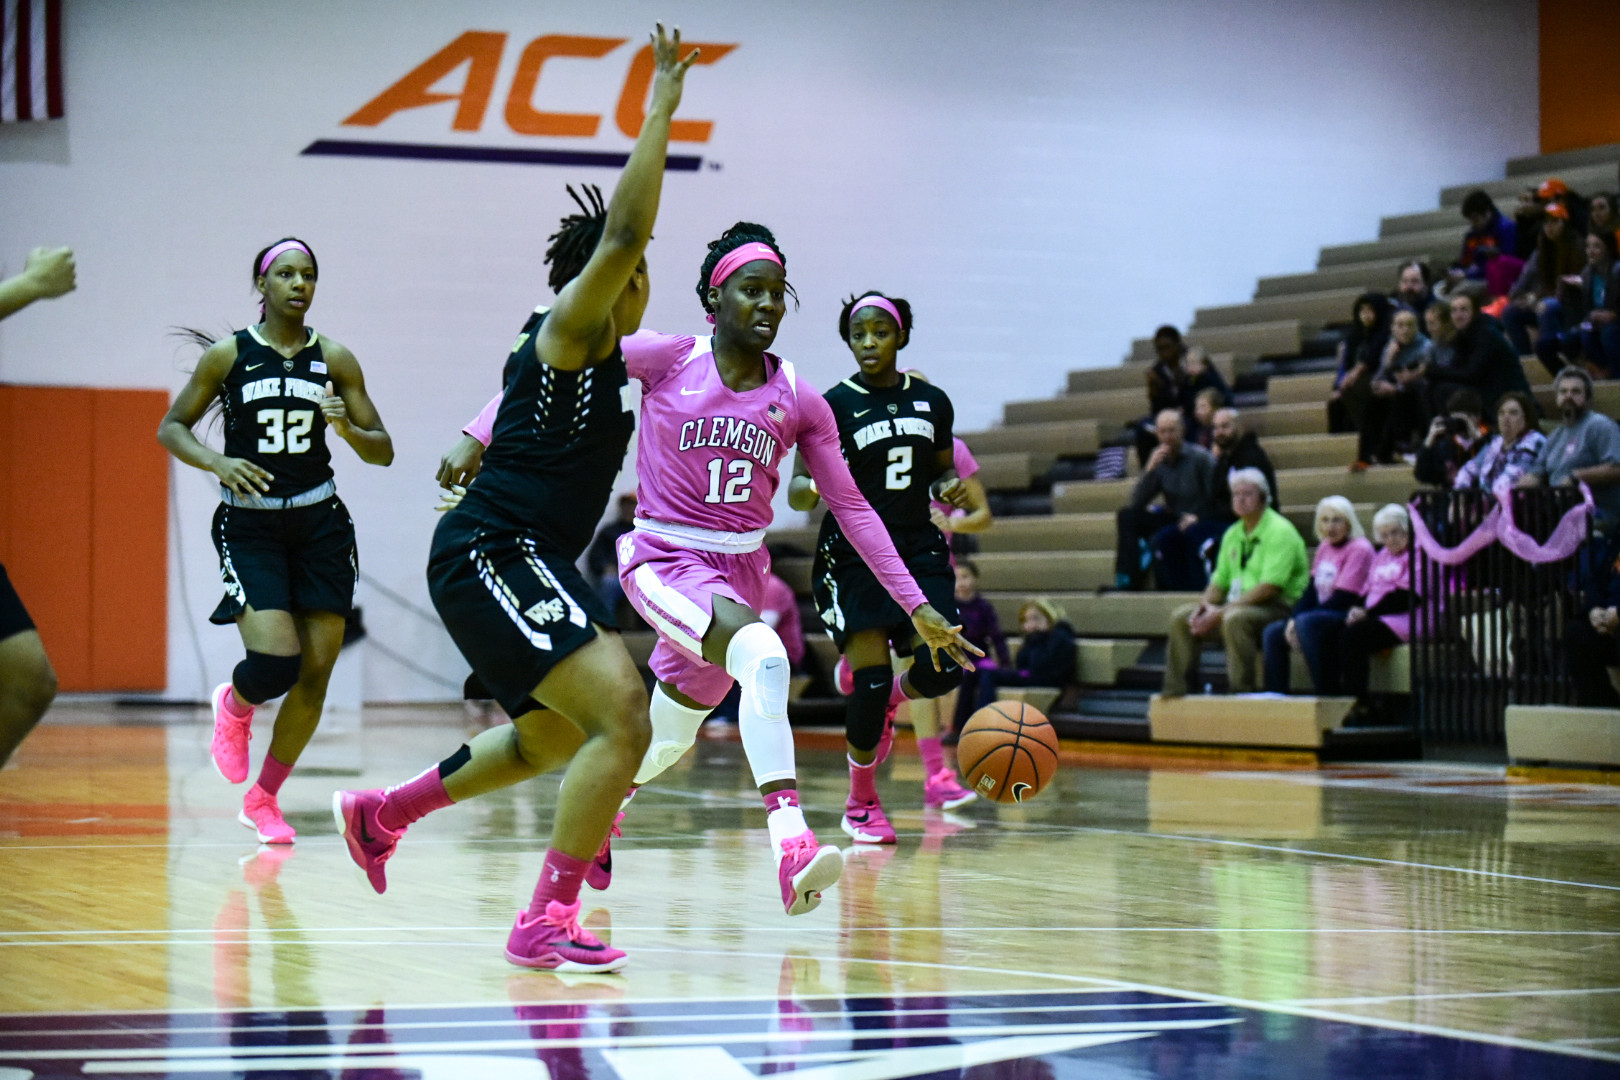 Tigers Drop Close Contest to Wake Forest